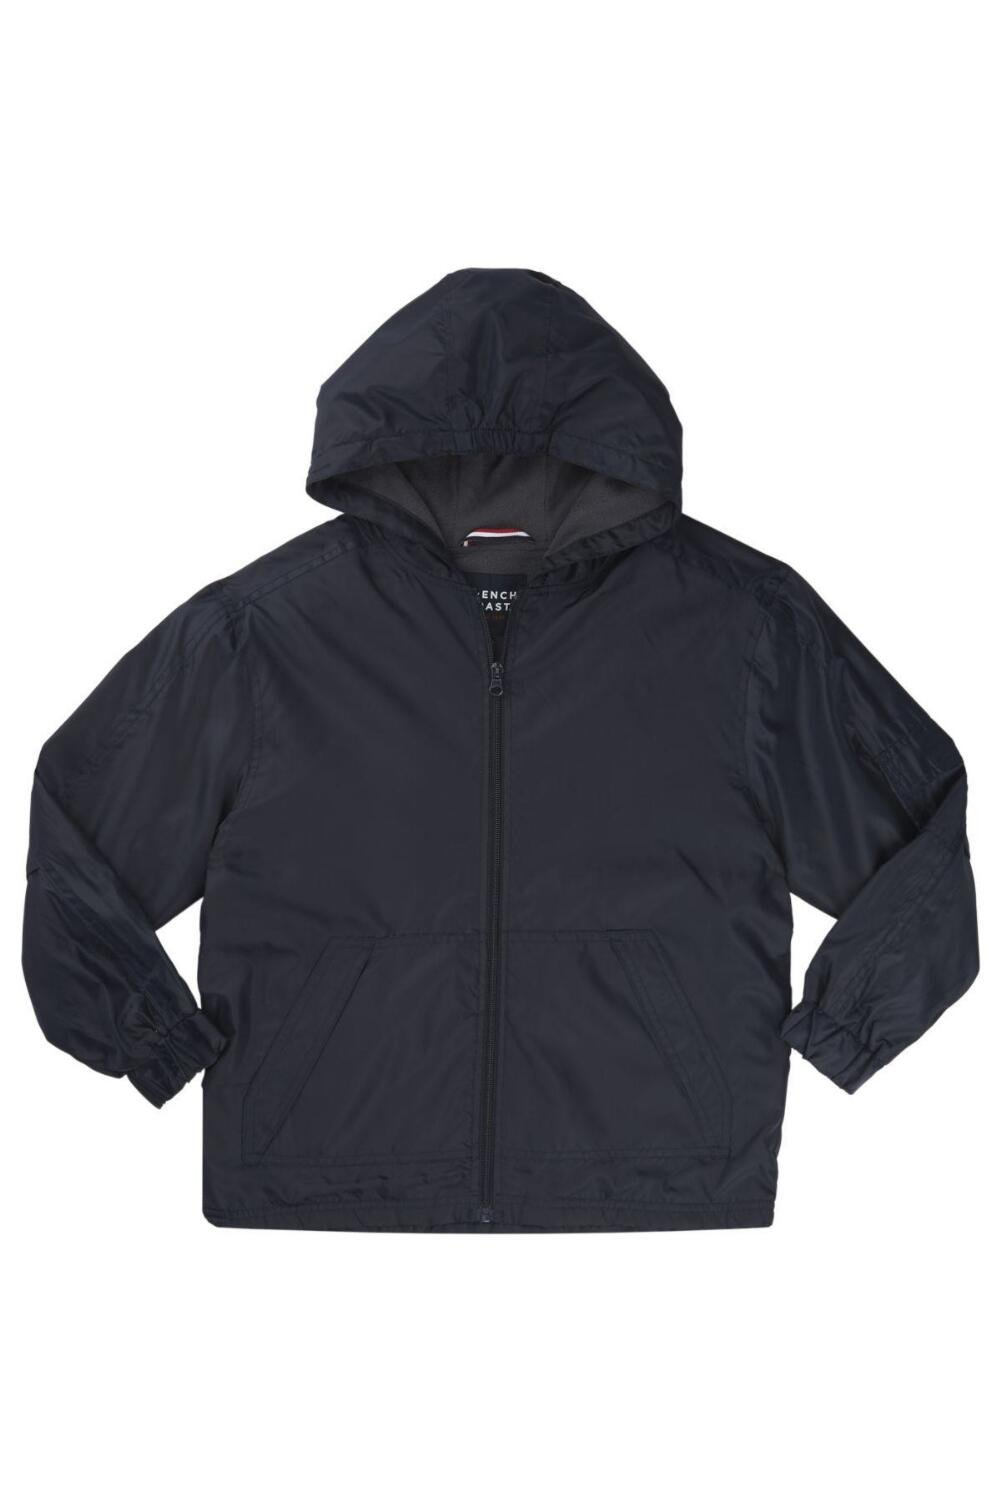 French Toast Lined Jacket(Size 8-14) Boys Navy 12